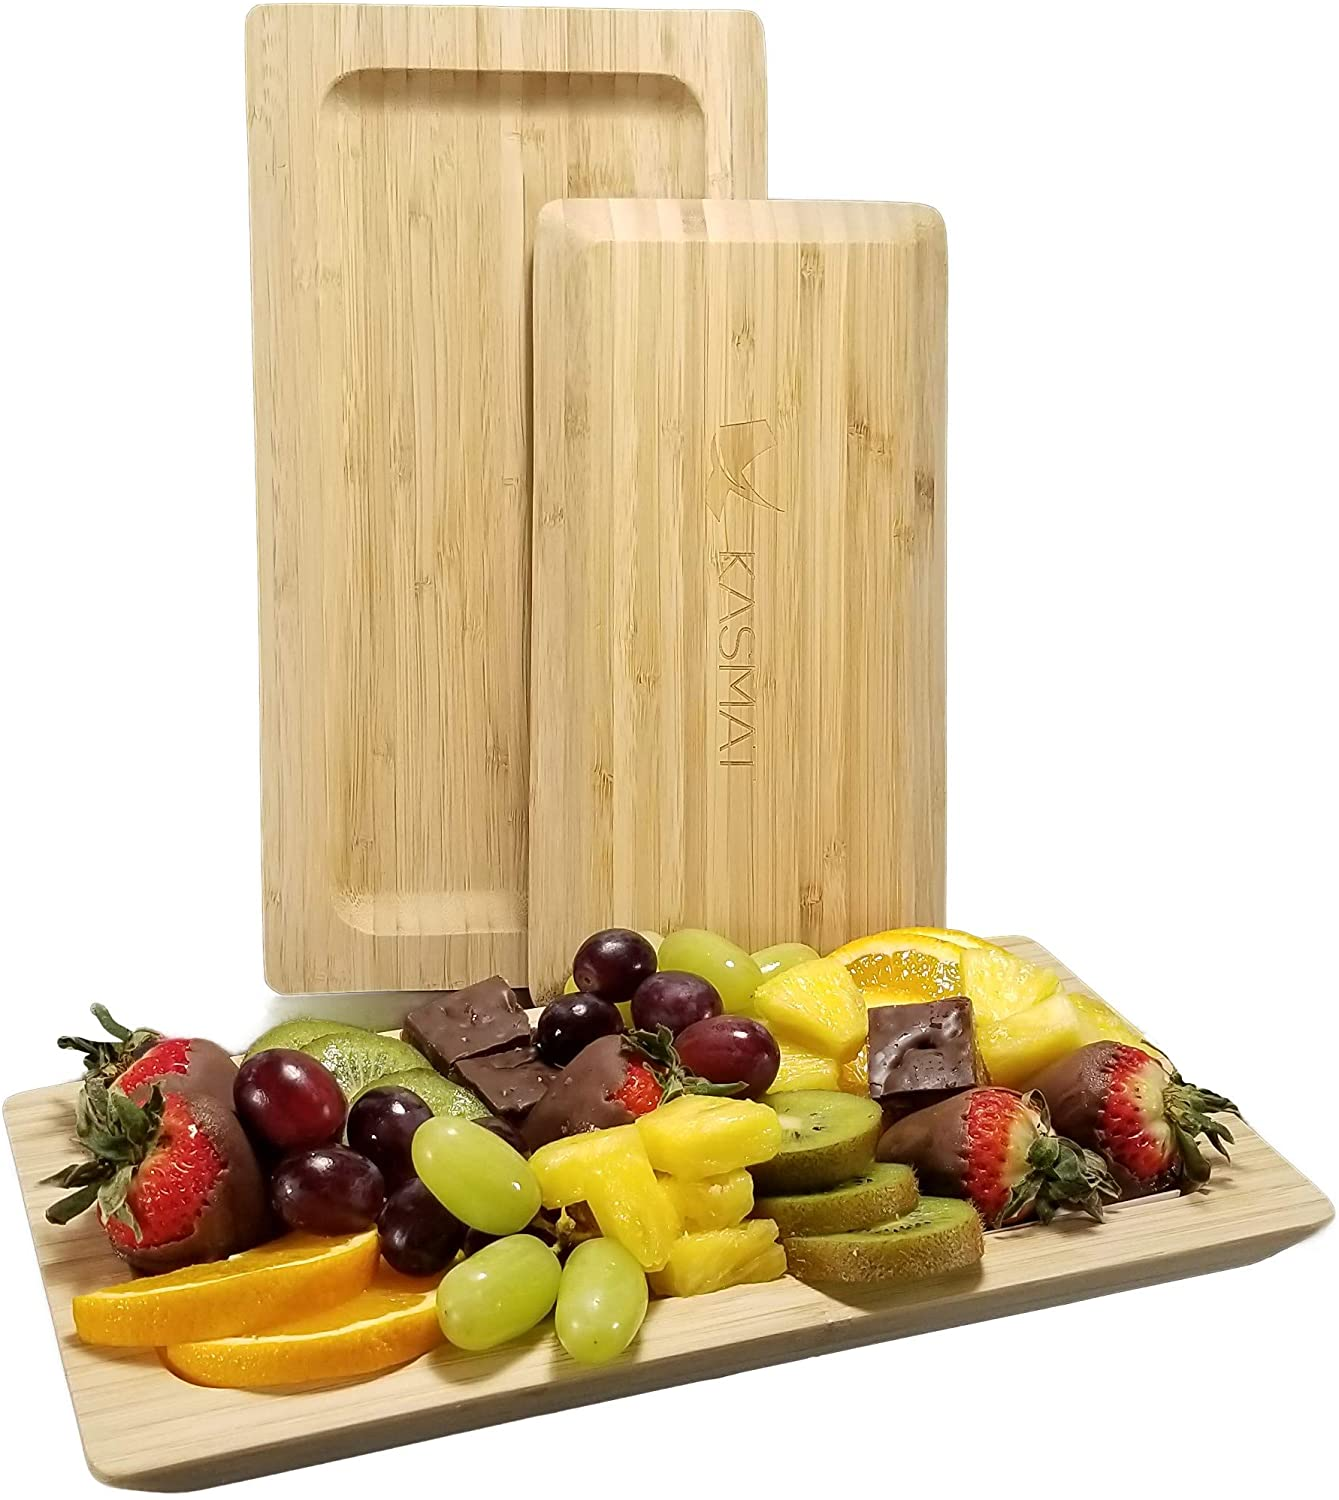 Bamboo Platter   Set of 2 Bamboo Serving Platters – Large & Small Natural Appetizer Trays. Versatile Eco-Friendly Plates for Fruit, Cheese, Crackers, Charcuterie that Enhance Any Occasion -By KASMAT